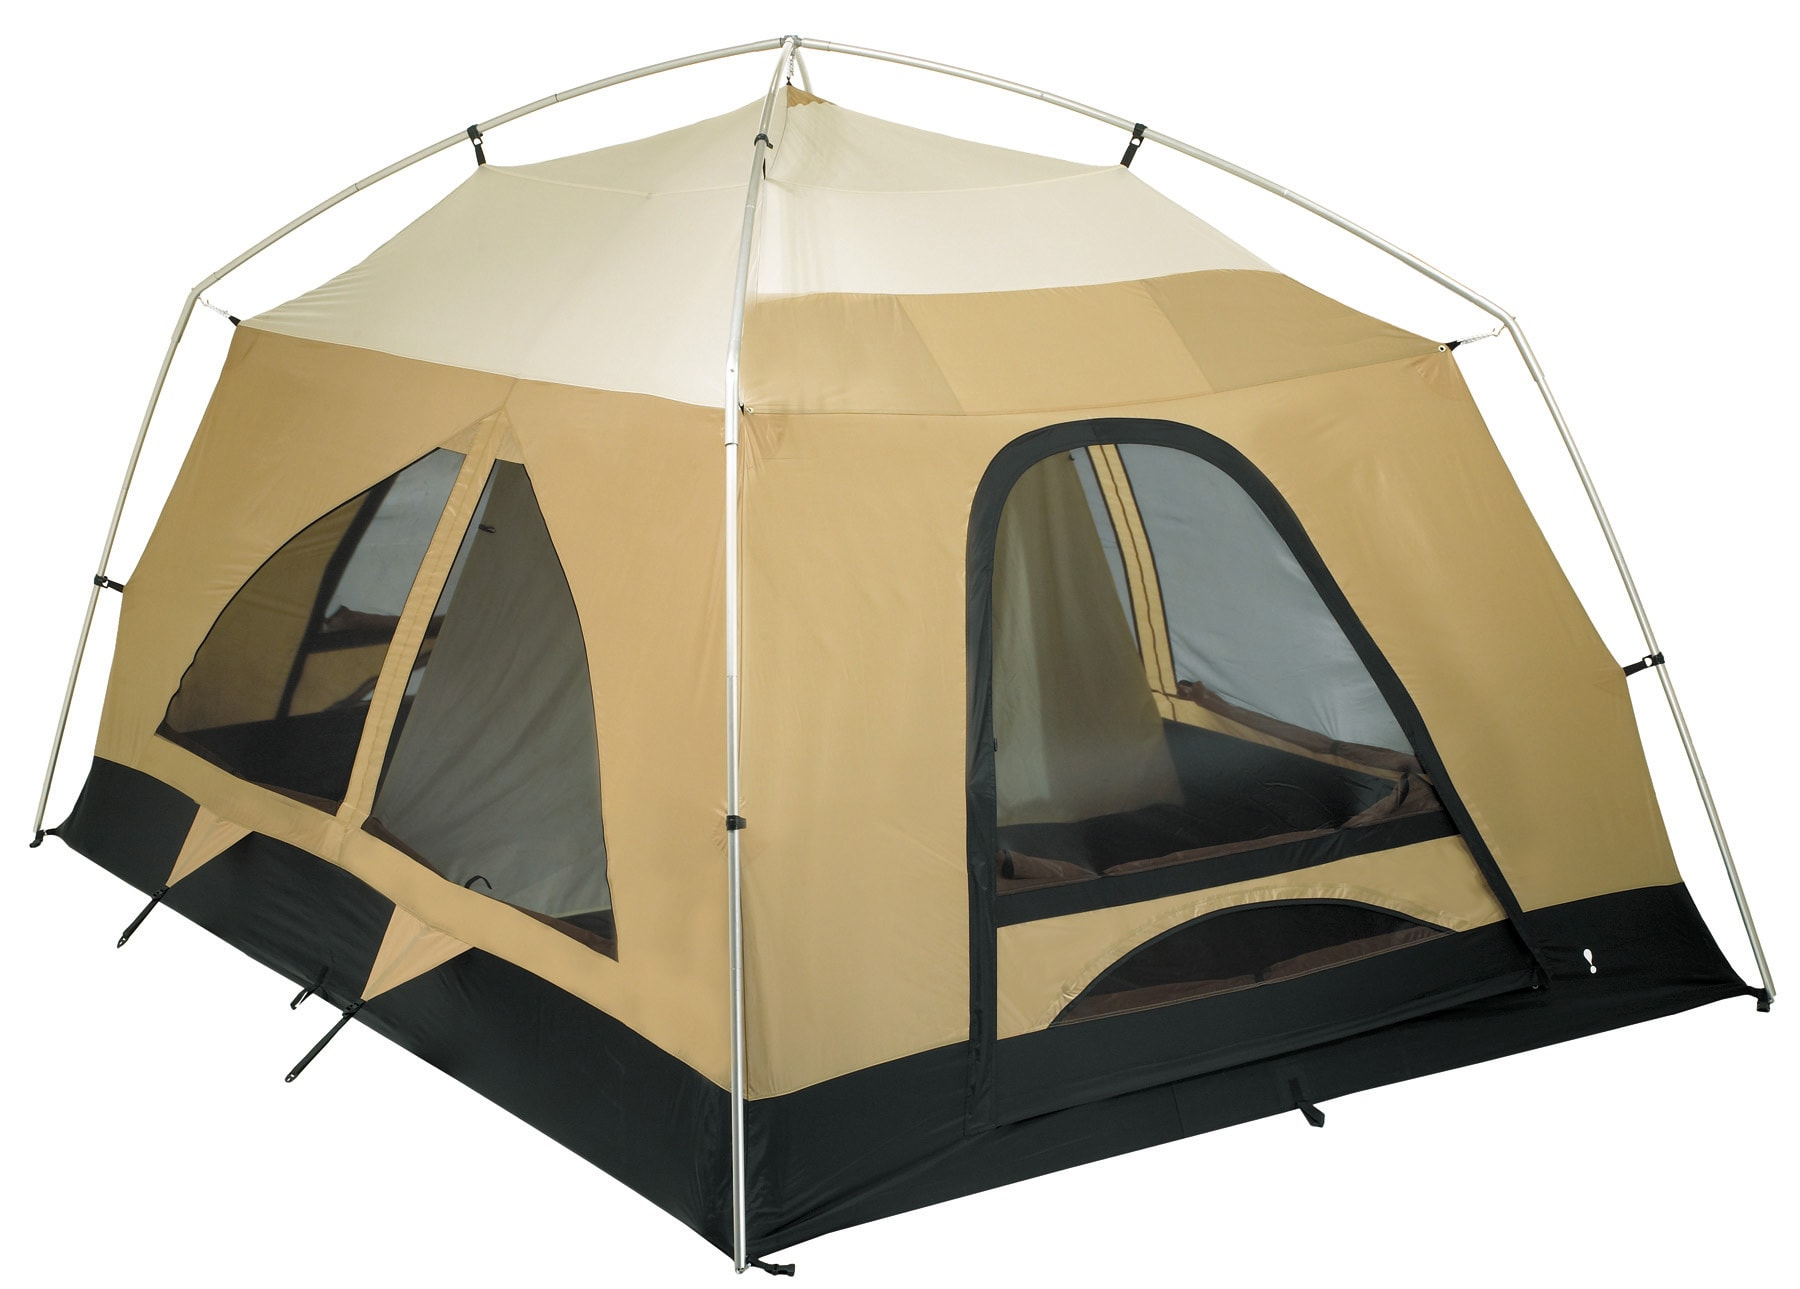 Eureka Titan 8 Person Tent - thumbnail 2  sc 1 st  The House : eureka 2 person tent - memphite.com